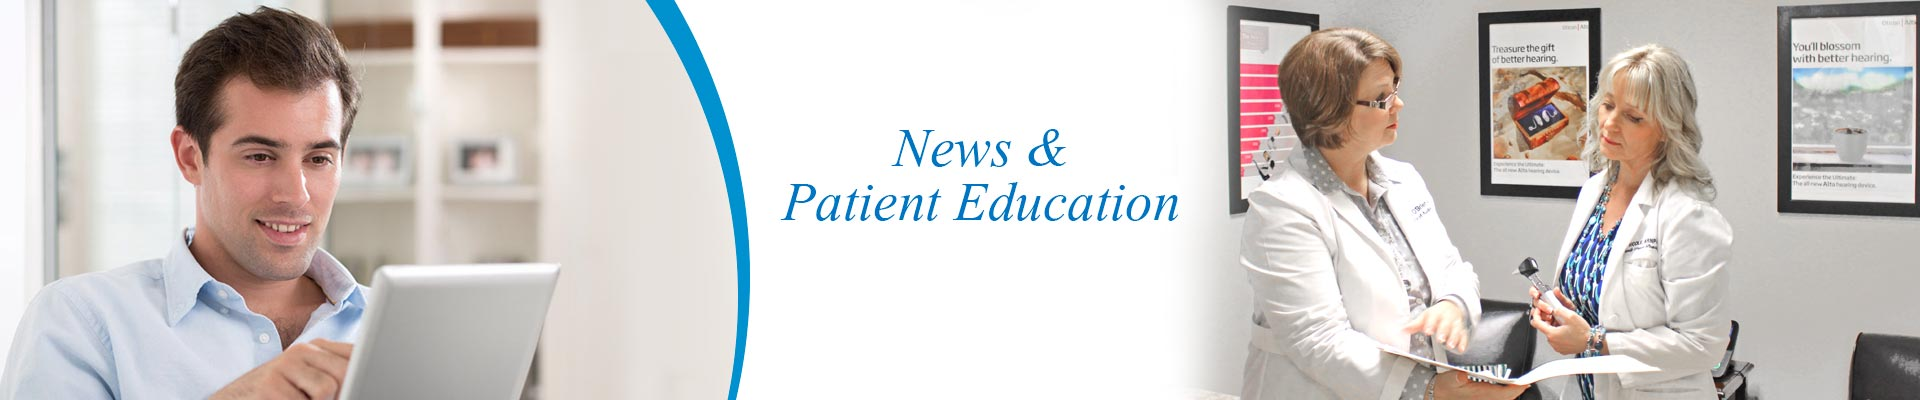 News & Patient Education